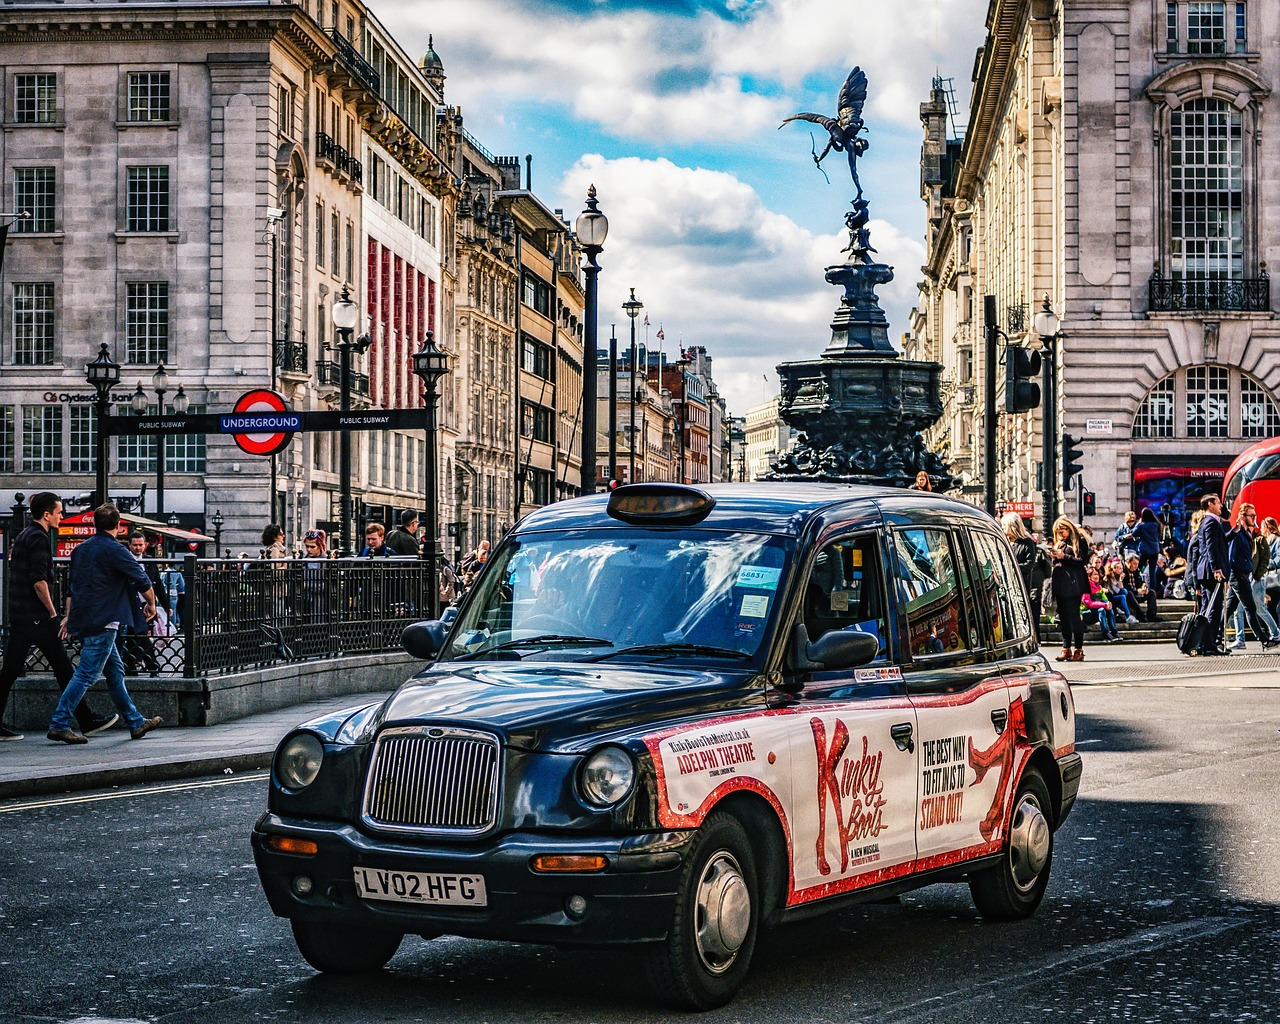 best-things-to-do-in-london-as-a-tourist